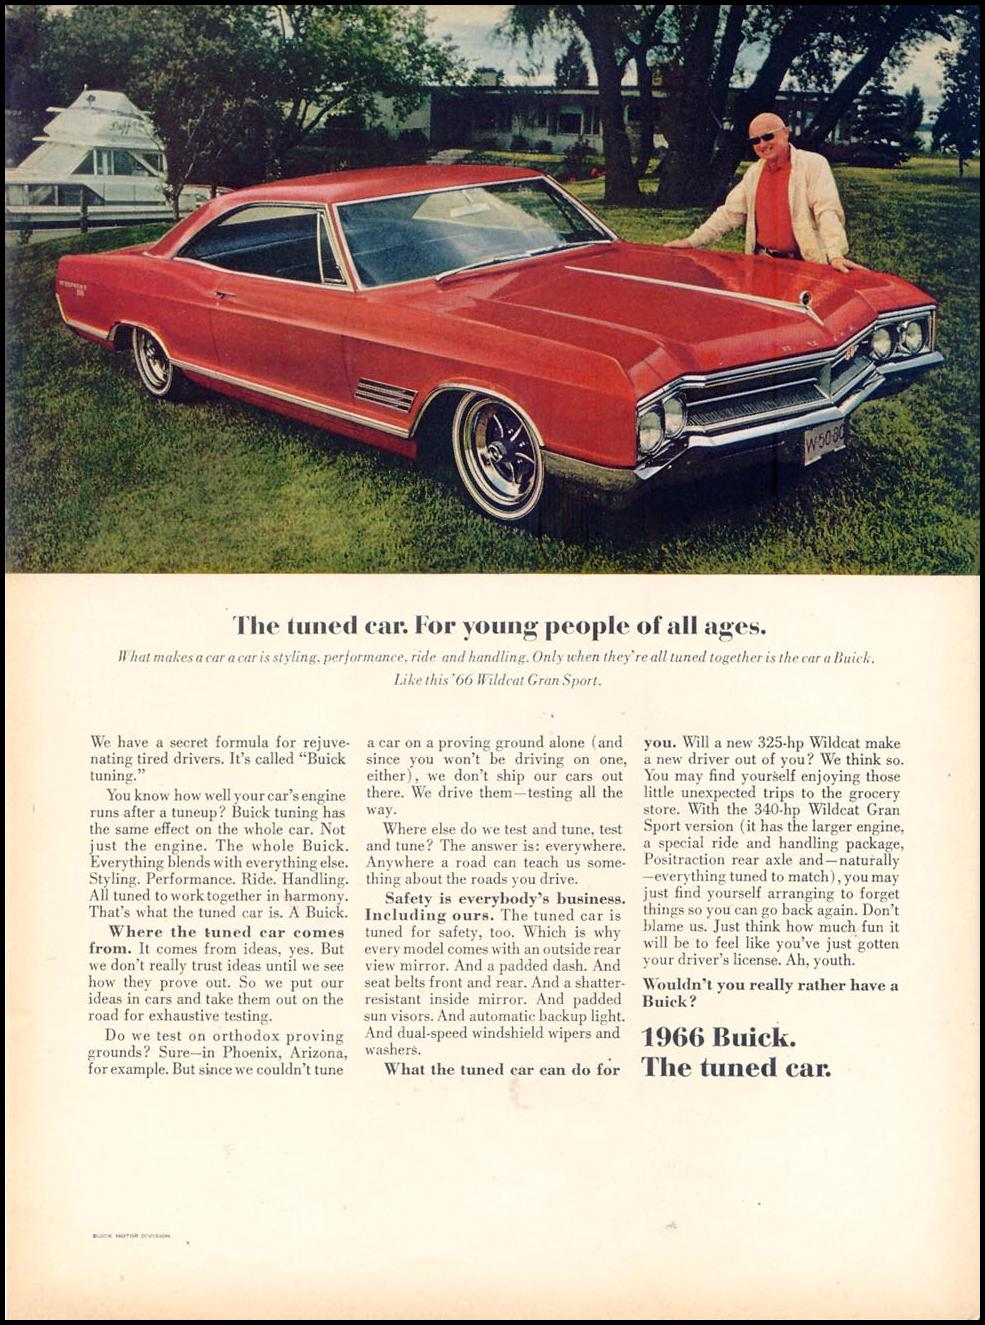 BUICK AUTOMOBILES TIME 03/11/1966 p. 98